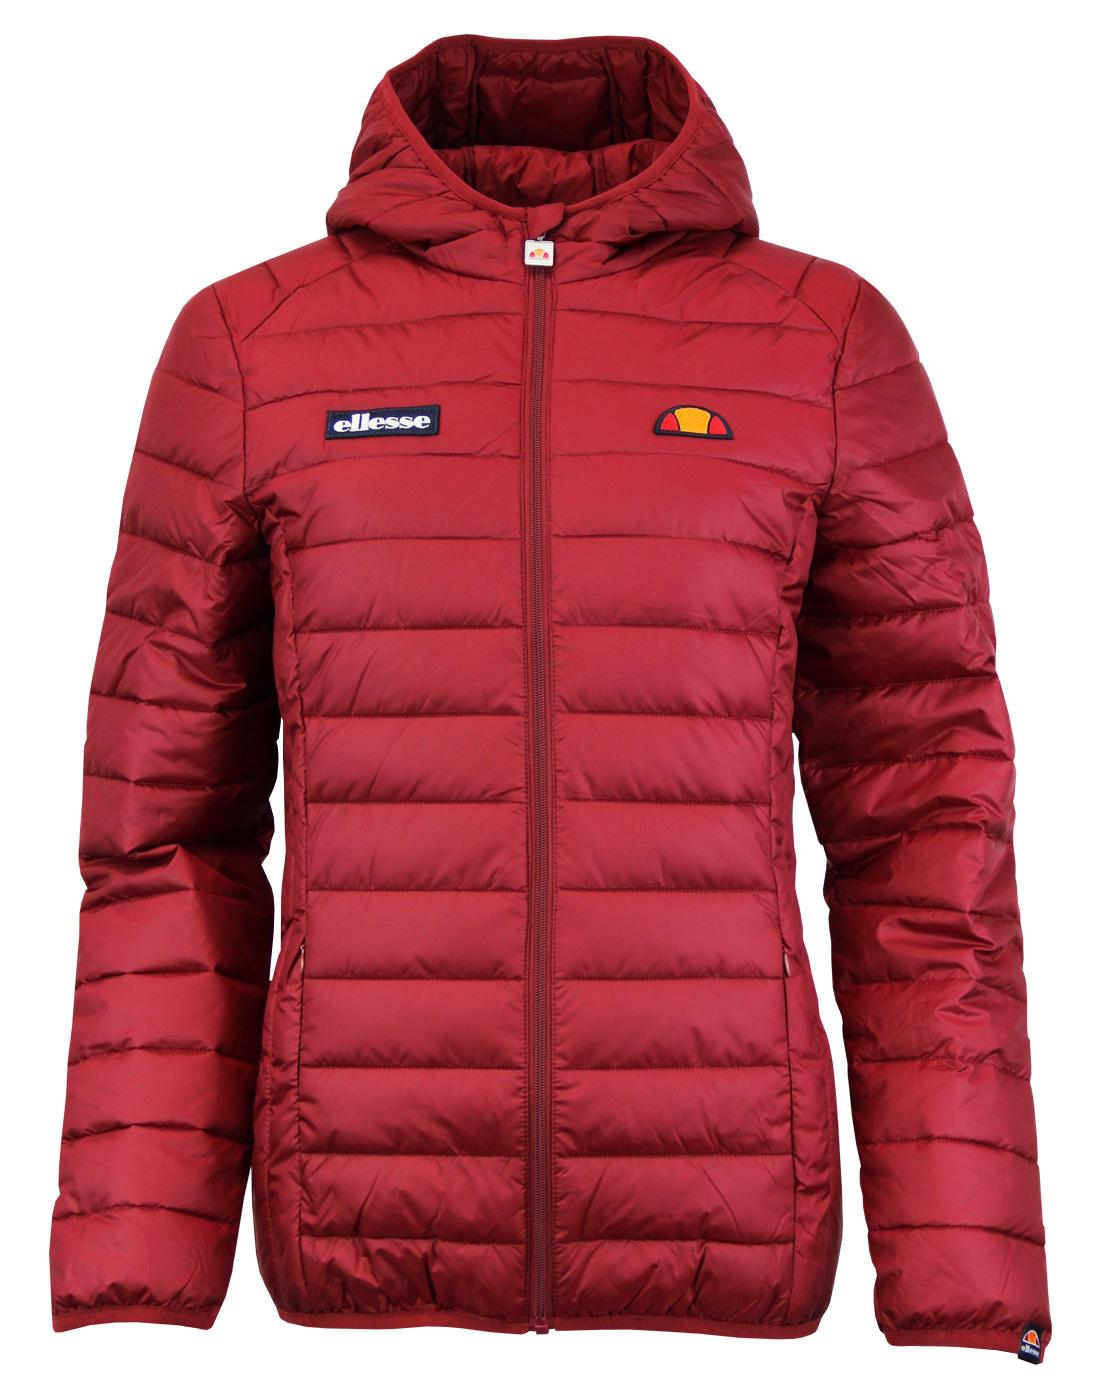 Lompard ELLESSE Retro 70s Quilted Ski Jacket (TR)